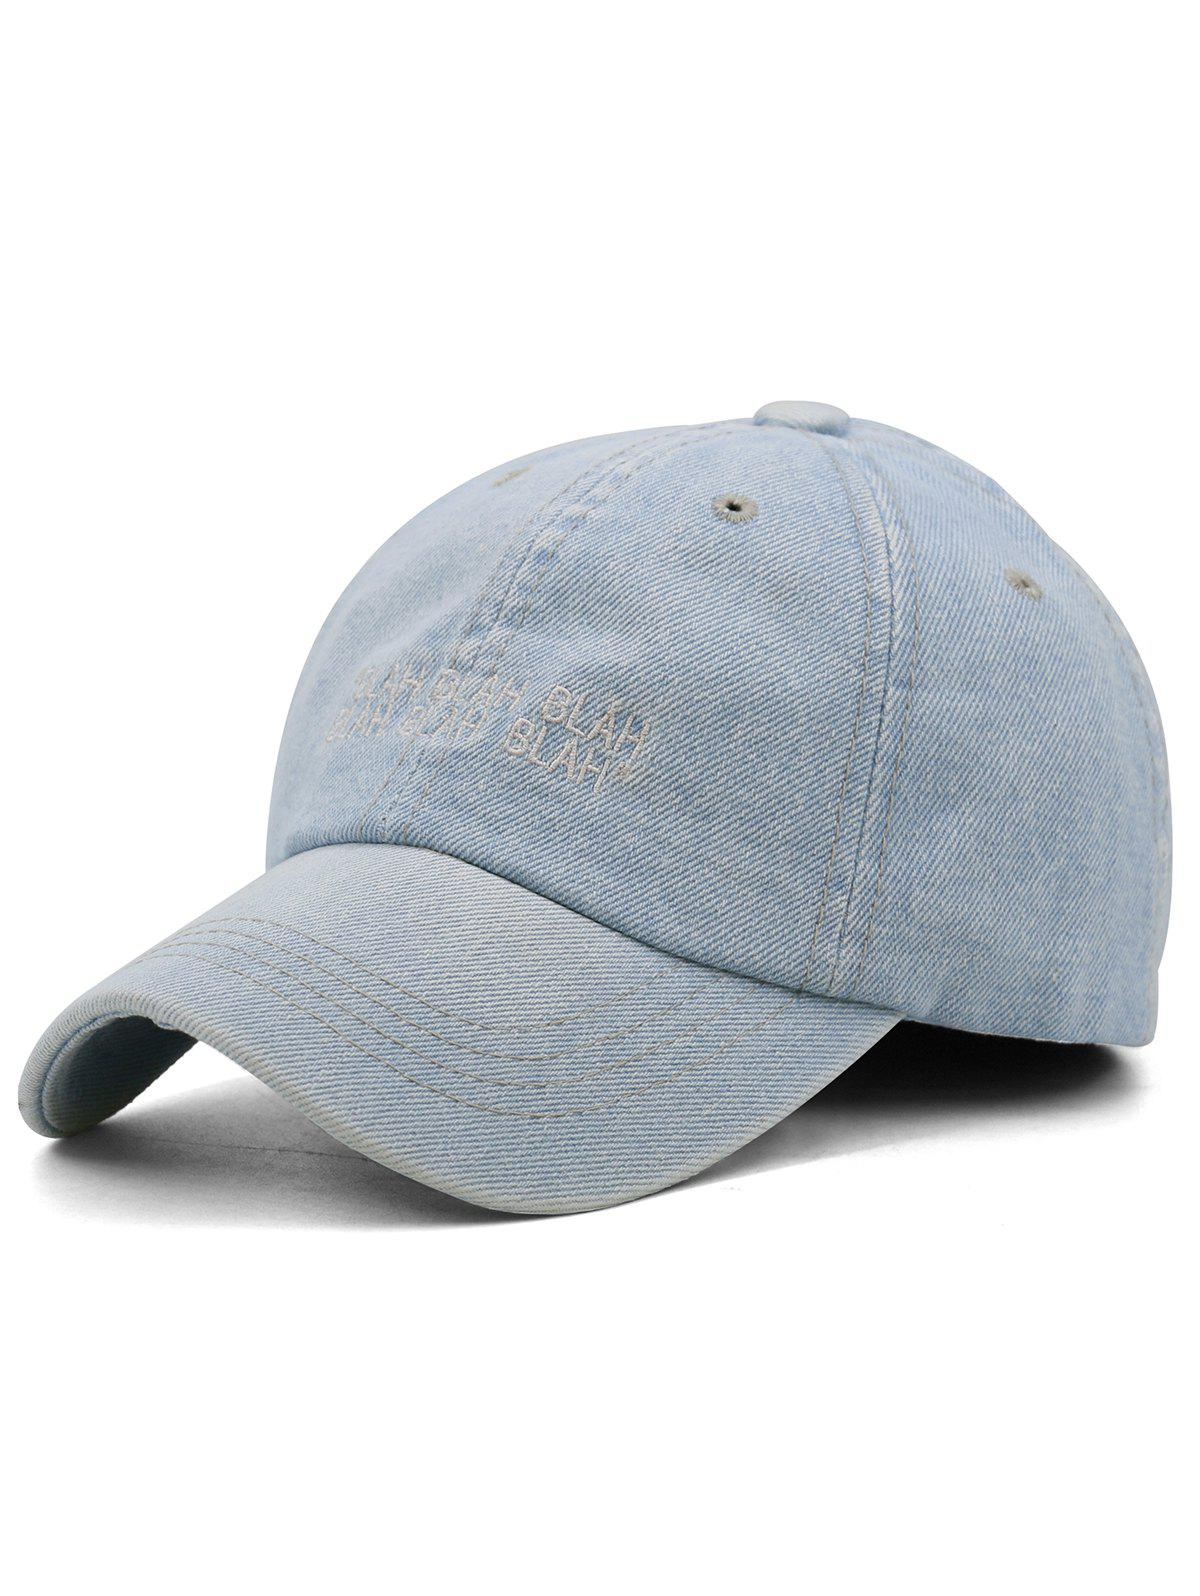 Fun Letter Embroidery Washed Dyed Trucker Hat - LIGHT BLUE